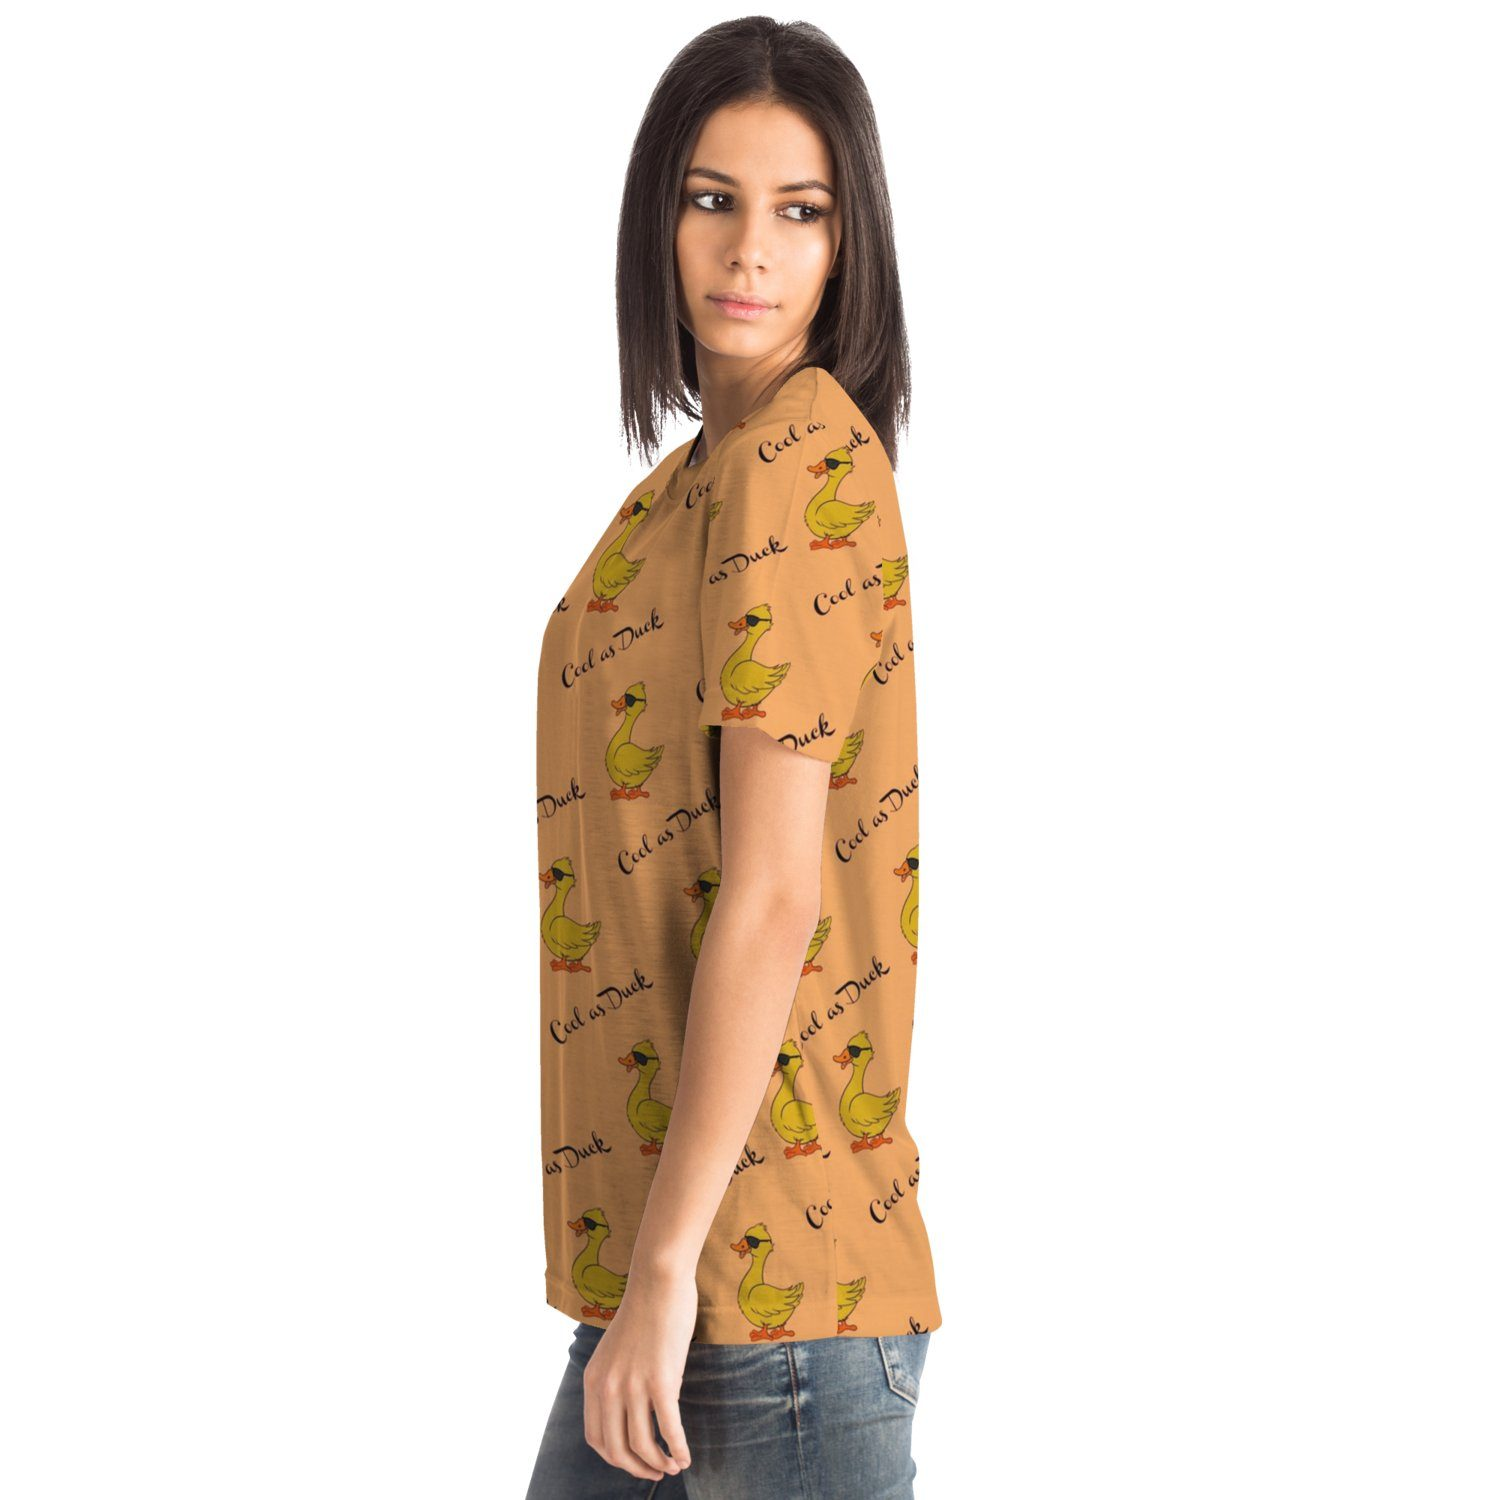 Cool As Duck T-shirt - Fair Dinkum Fashion